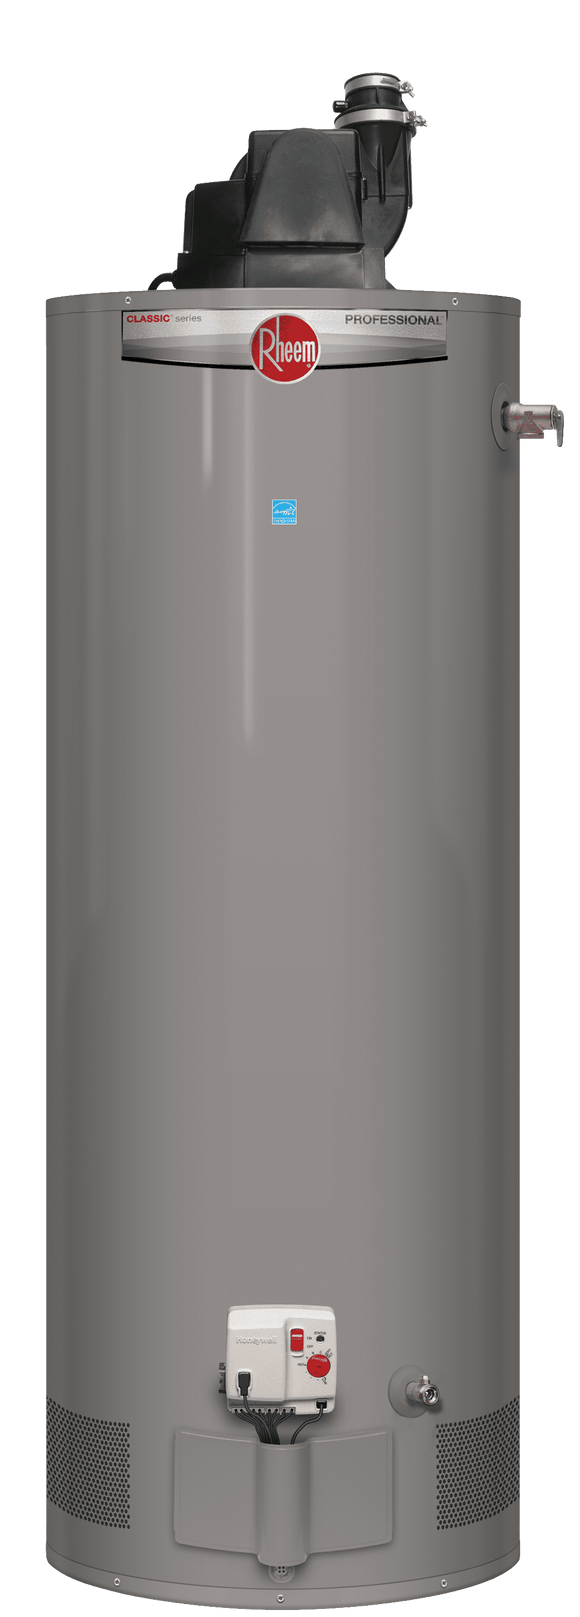 RHEEM PROG50S-36N RH67 PV Professional Classic 50 Gallon Short 36,000 BTU Natural Gas Residential Power Vent Water Heater